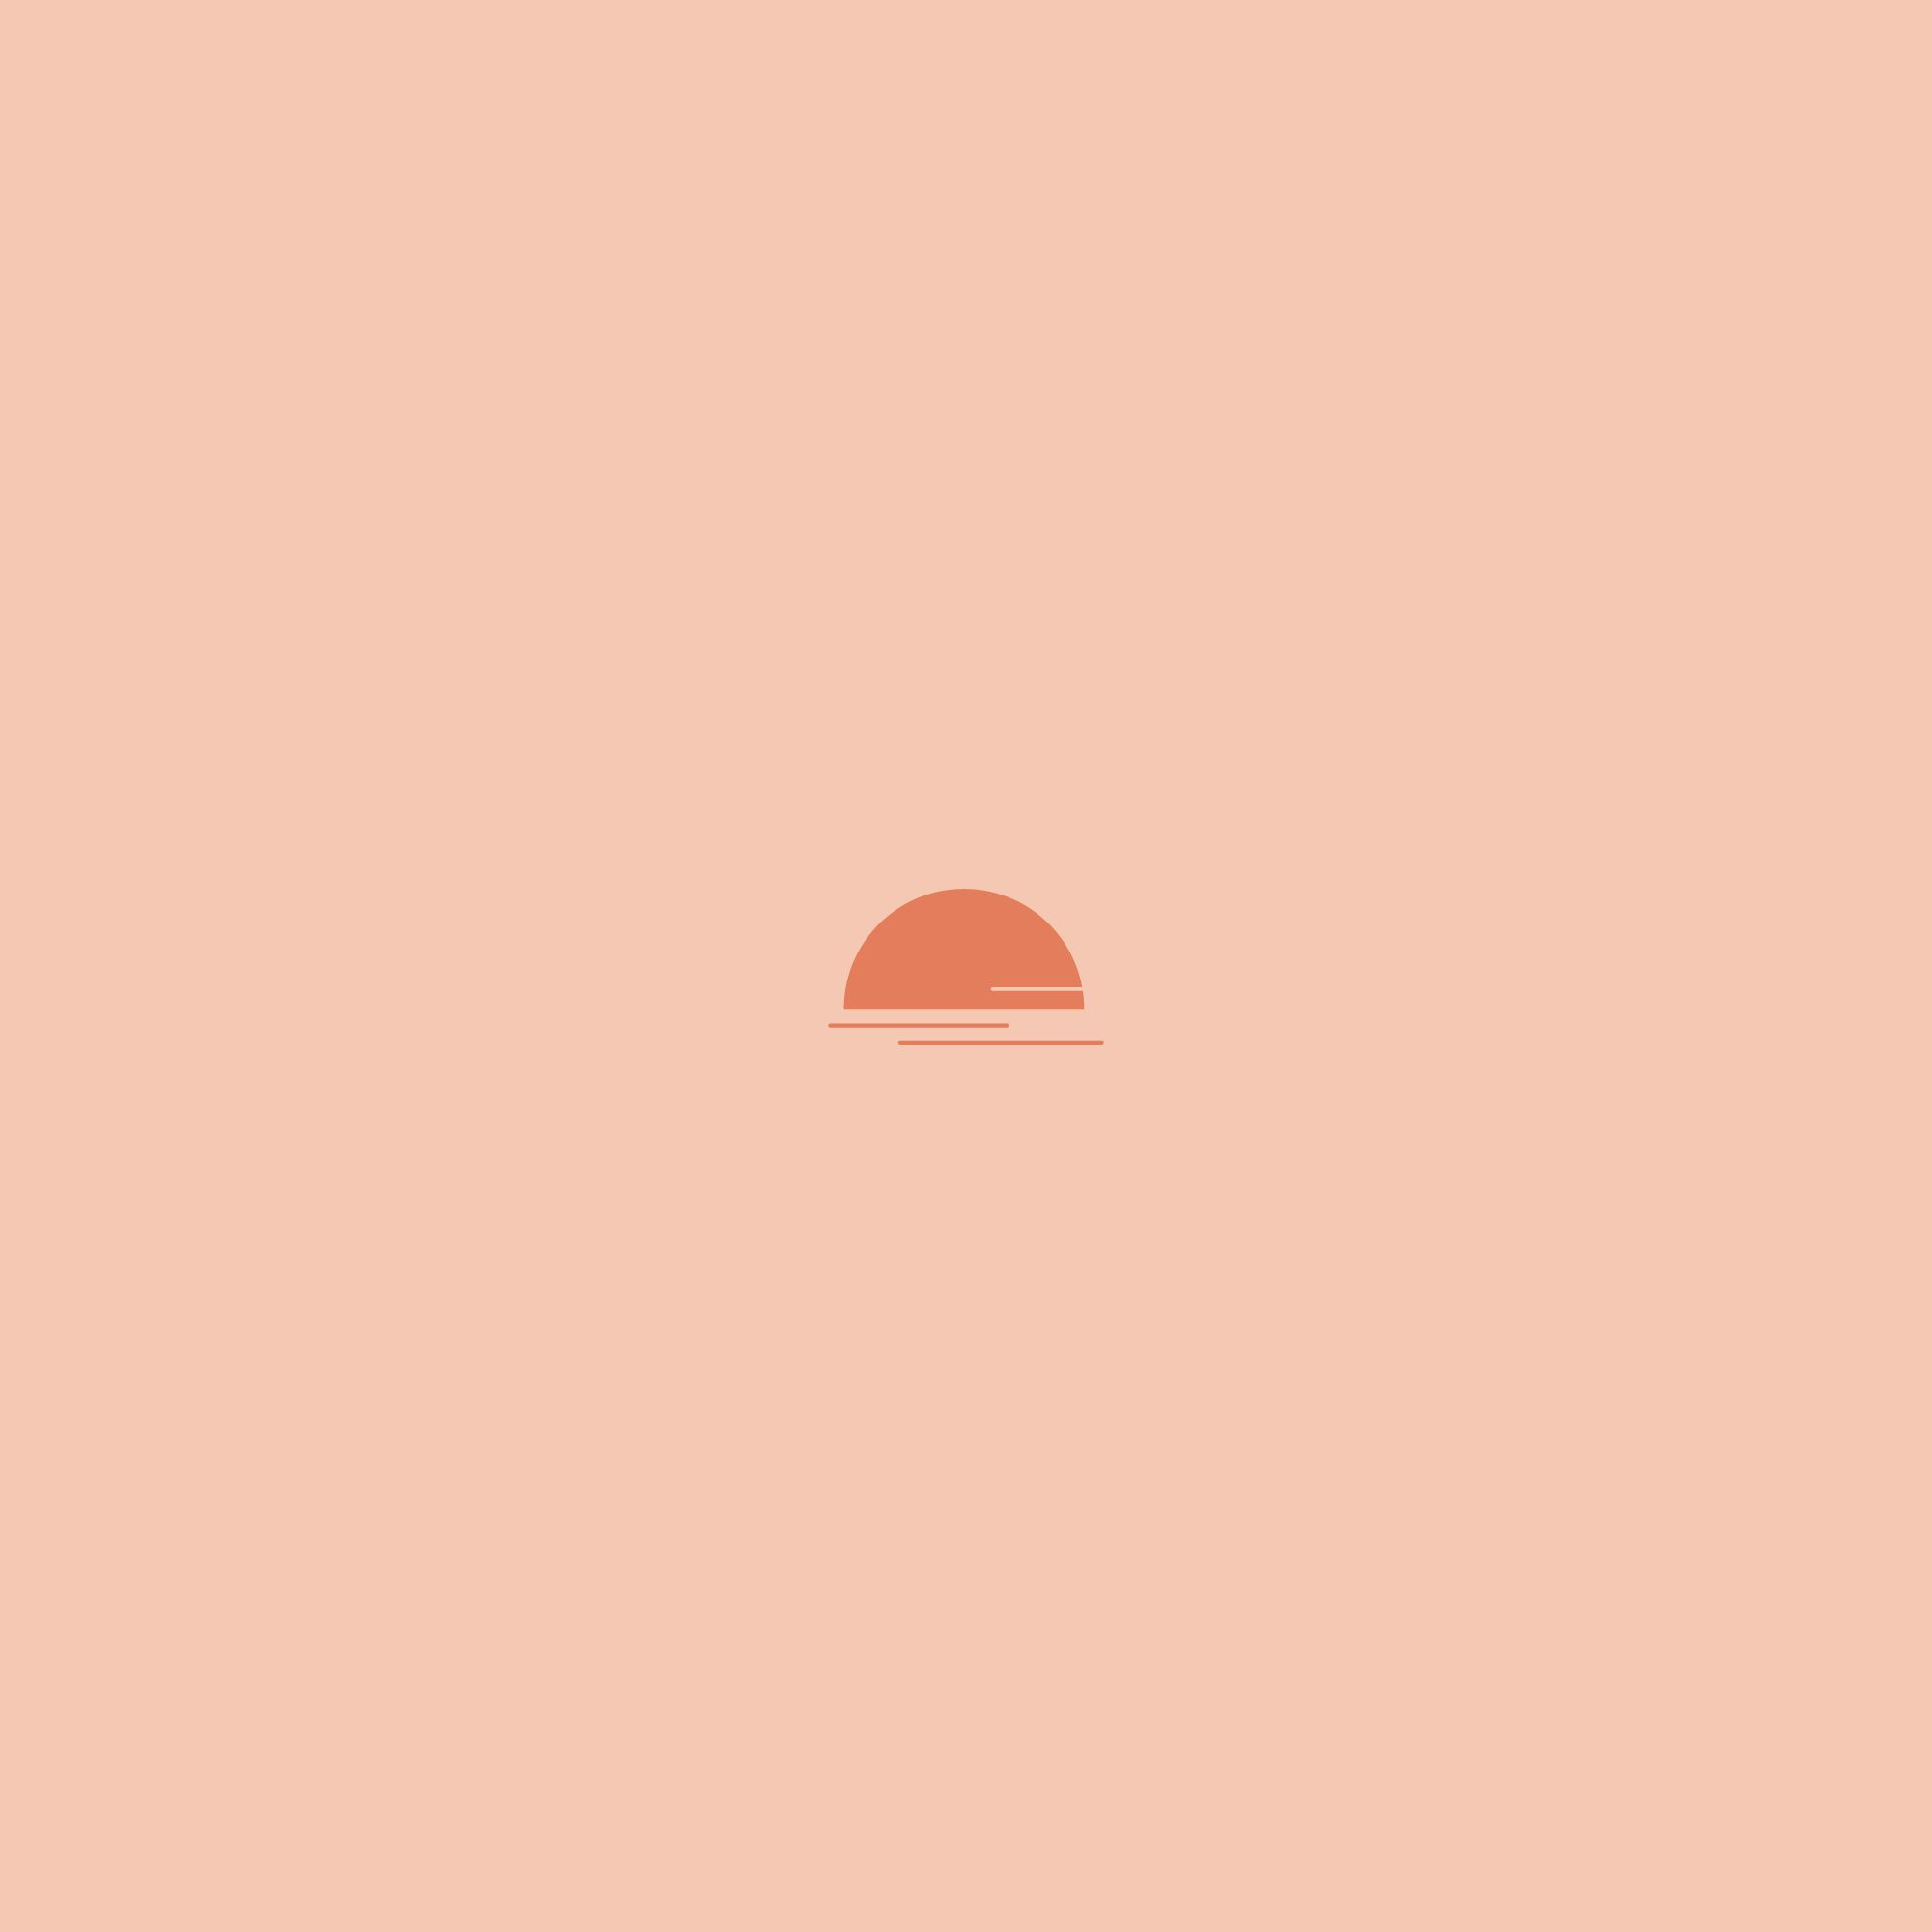 sun logo in 2020 graphic minimalist sunset logo sunrise logo sun logo in 2020 graphic minimalist